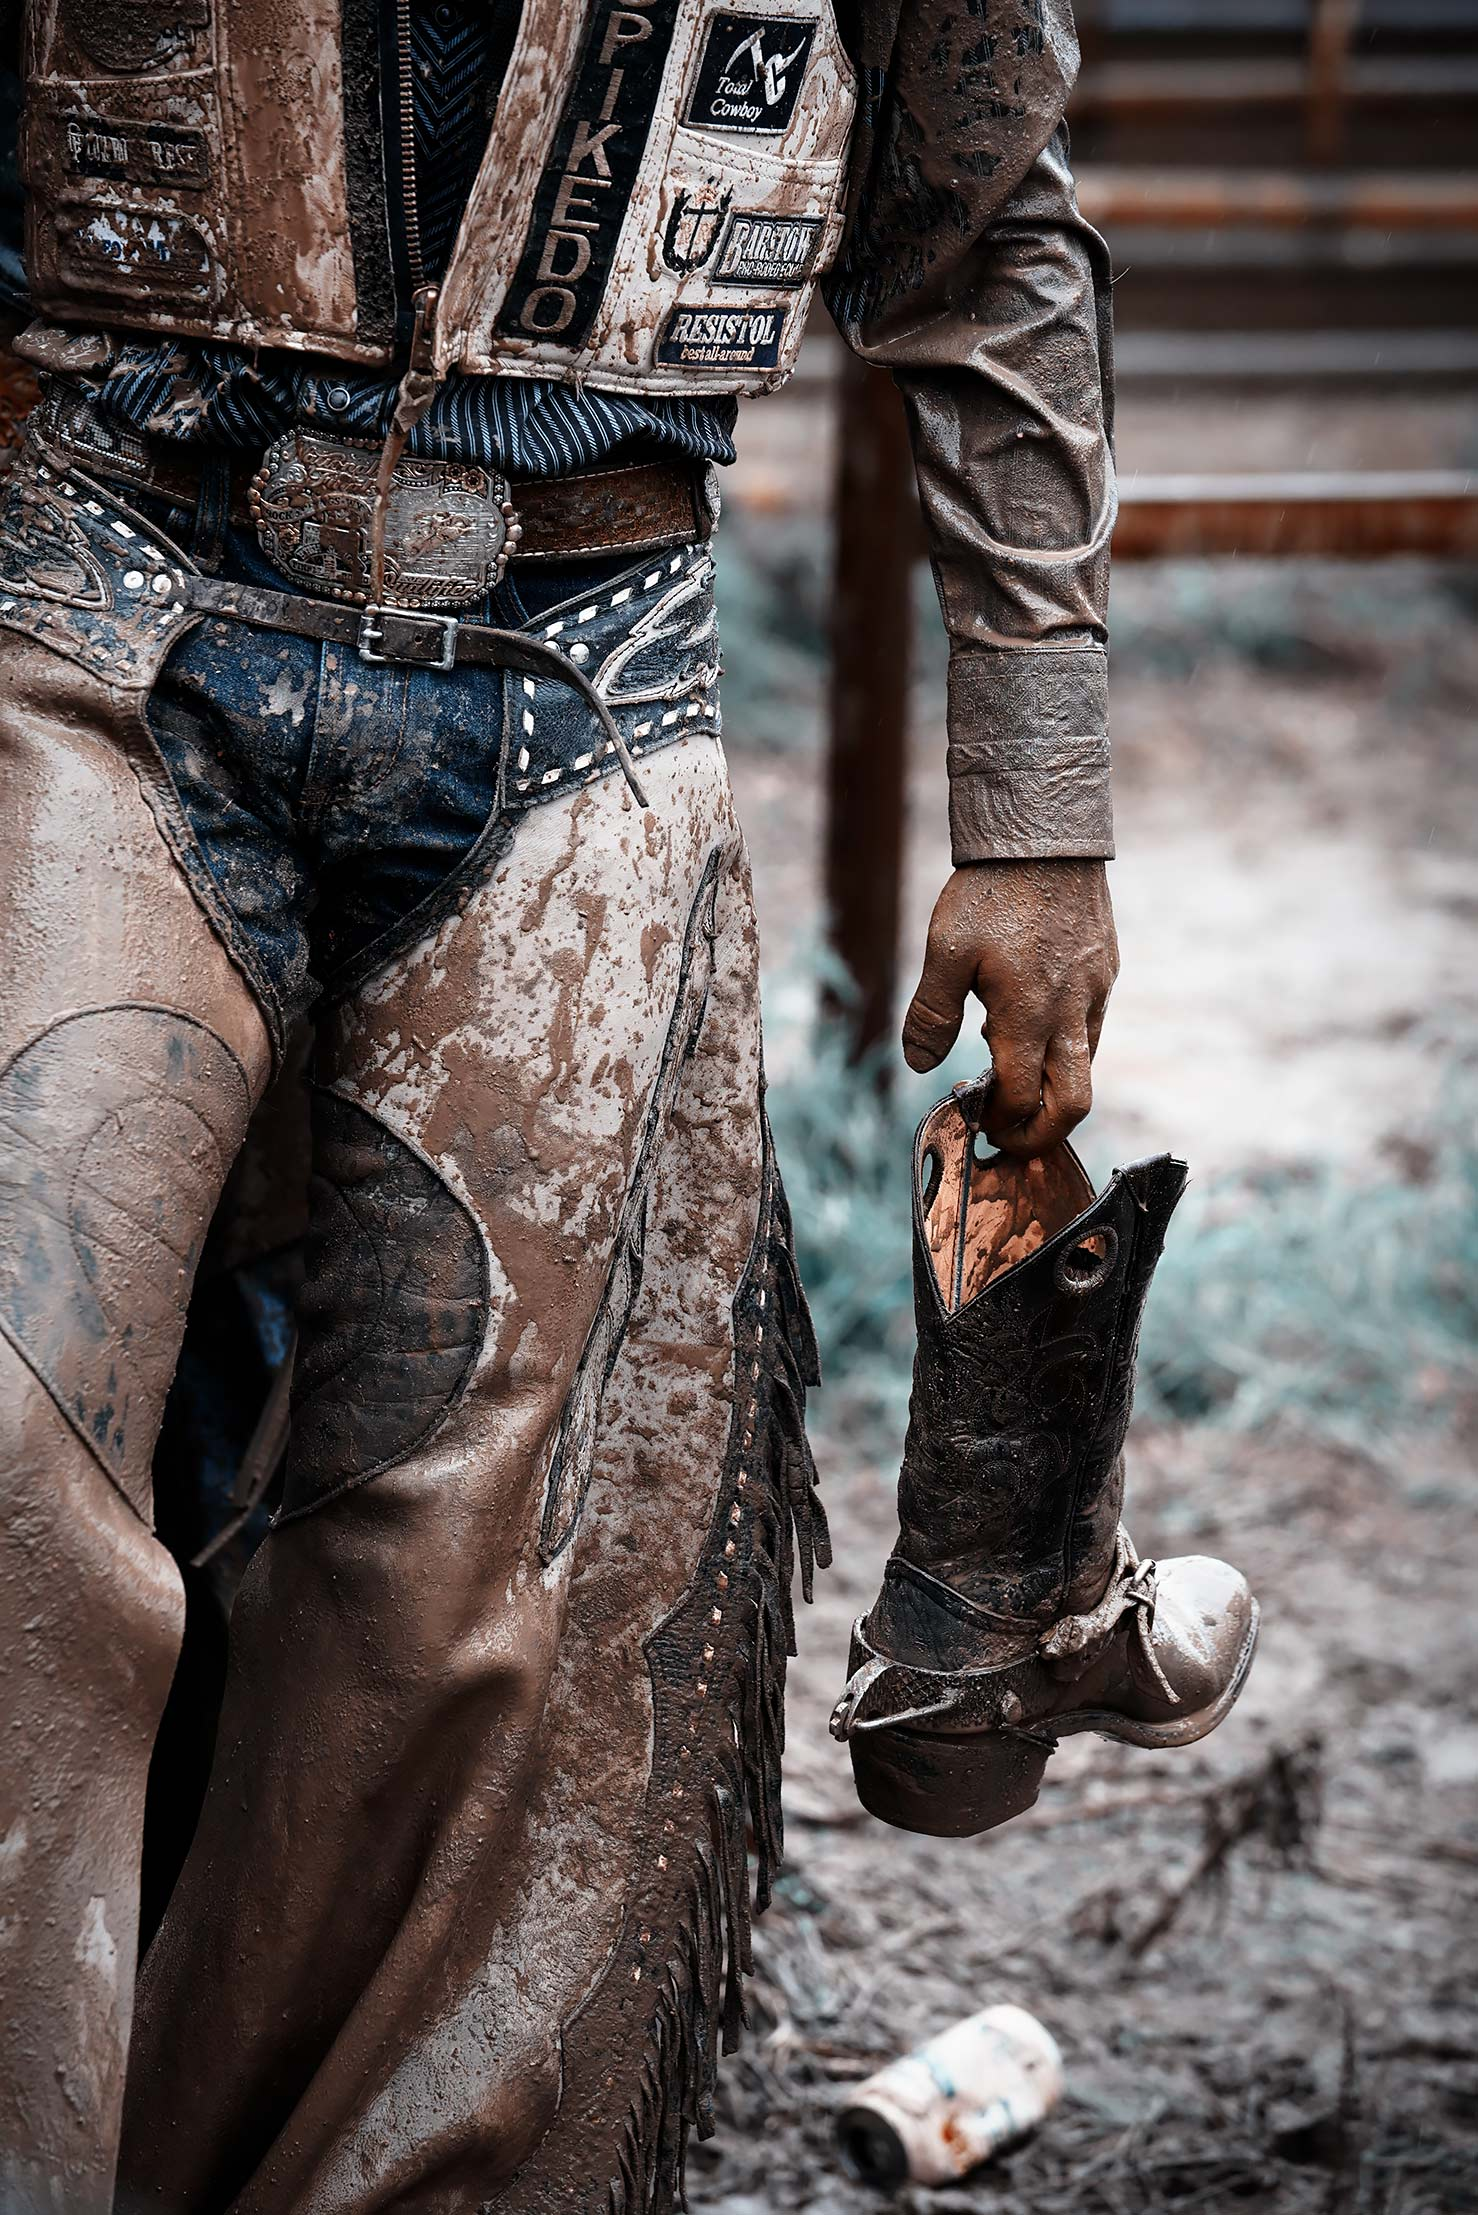 Cowboy holding his muddy boot